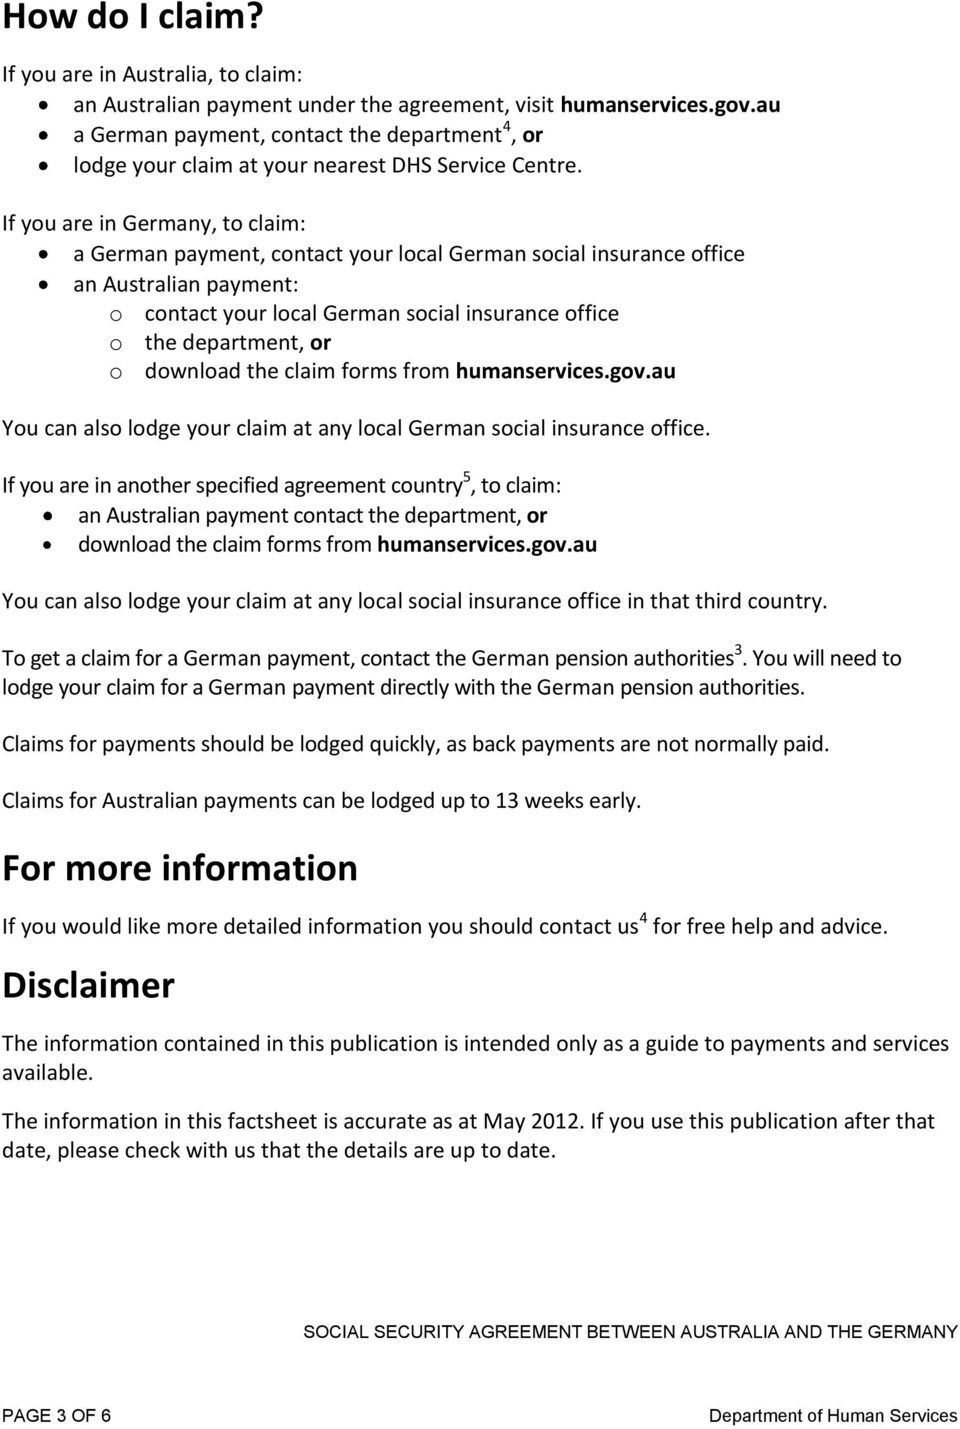 If you are in Germany, to claim: a German payment, contact your local German social insurance office an Australian payment: o contact your local German social insurance office o the department, or o